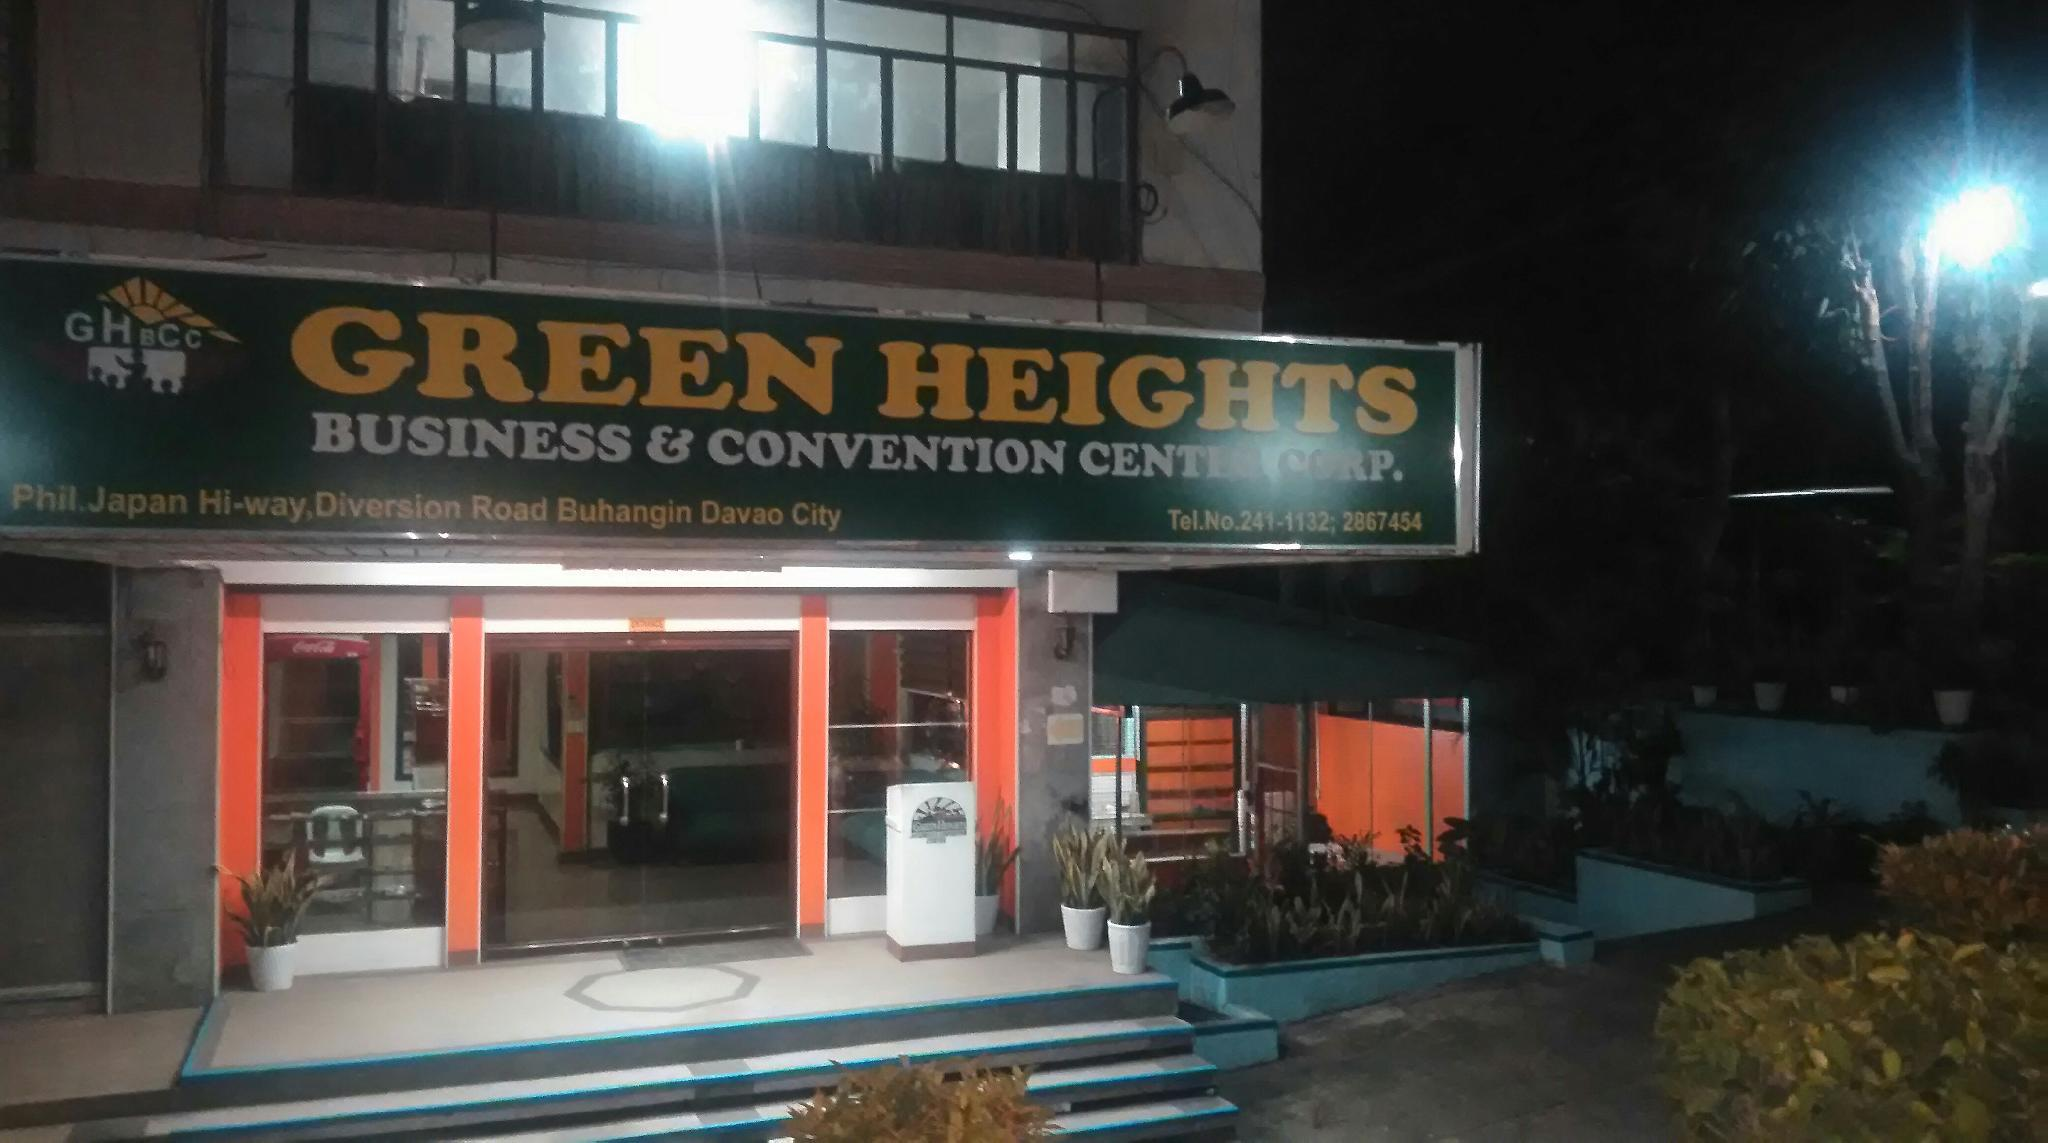 Green Heights Business And Convention Center